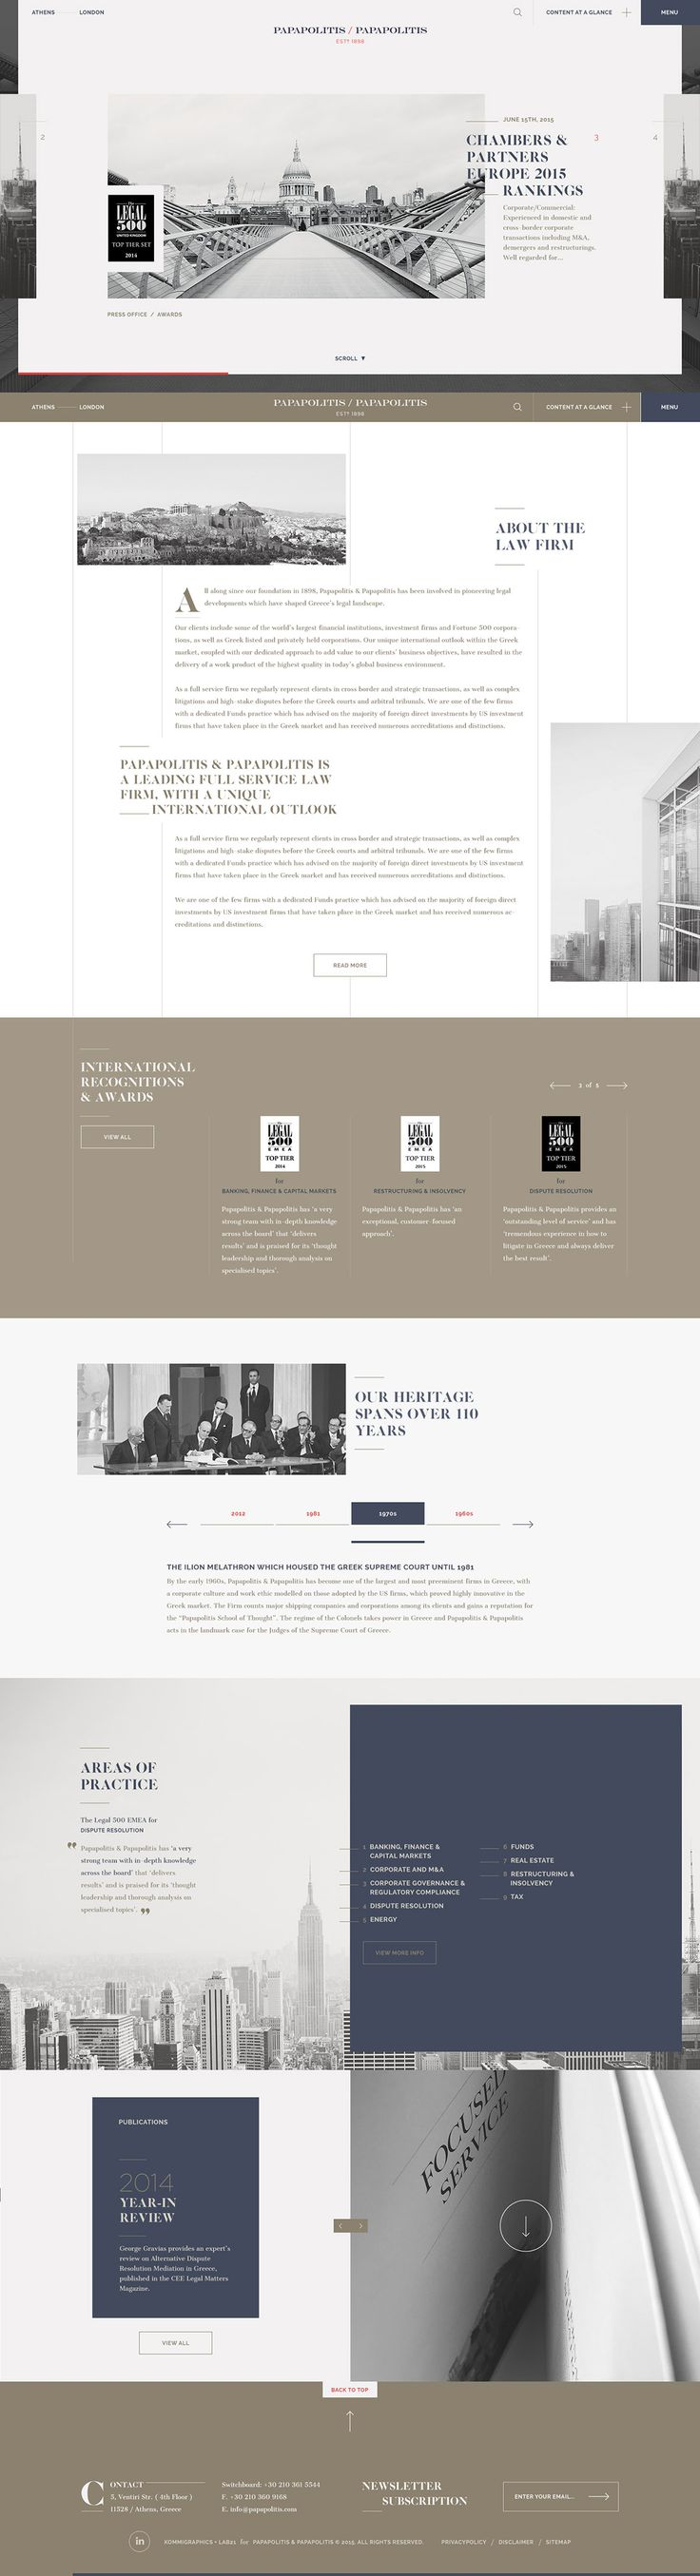 Website Design And Development For Papapolitis - Papapolitis By Kommigraphics